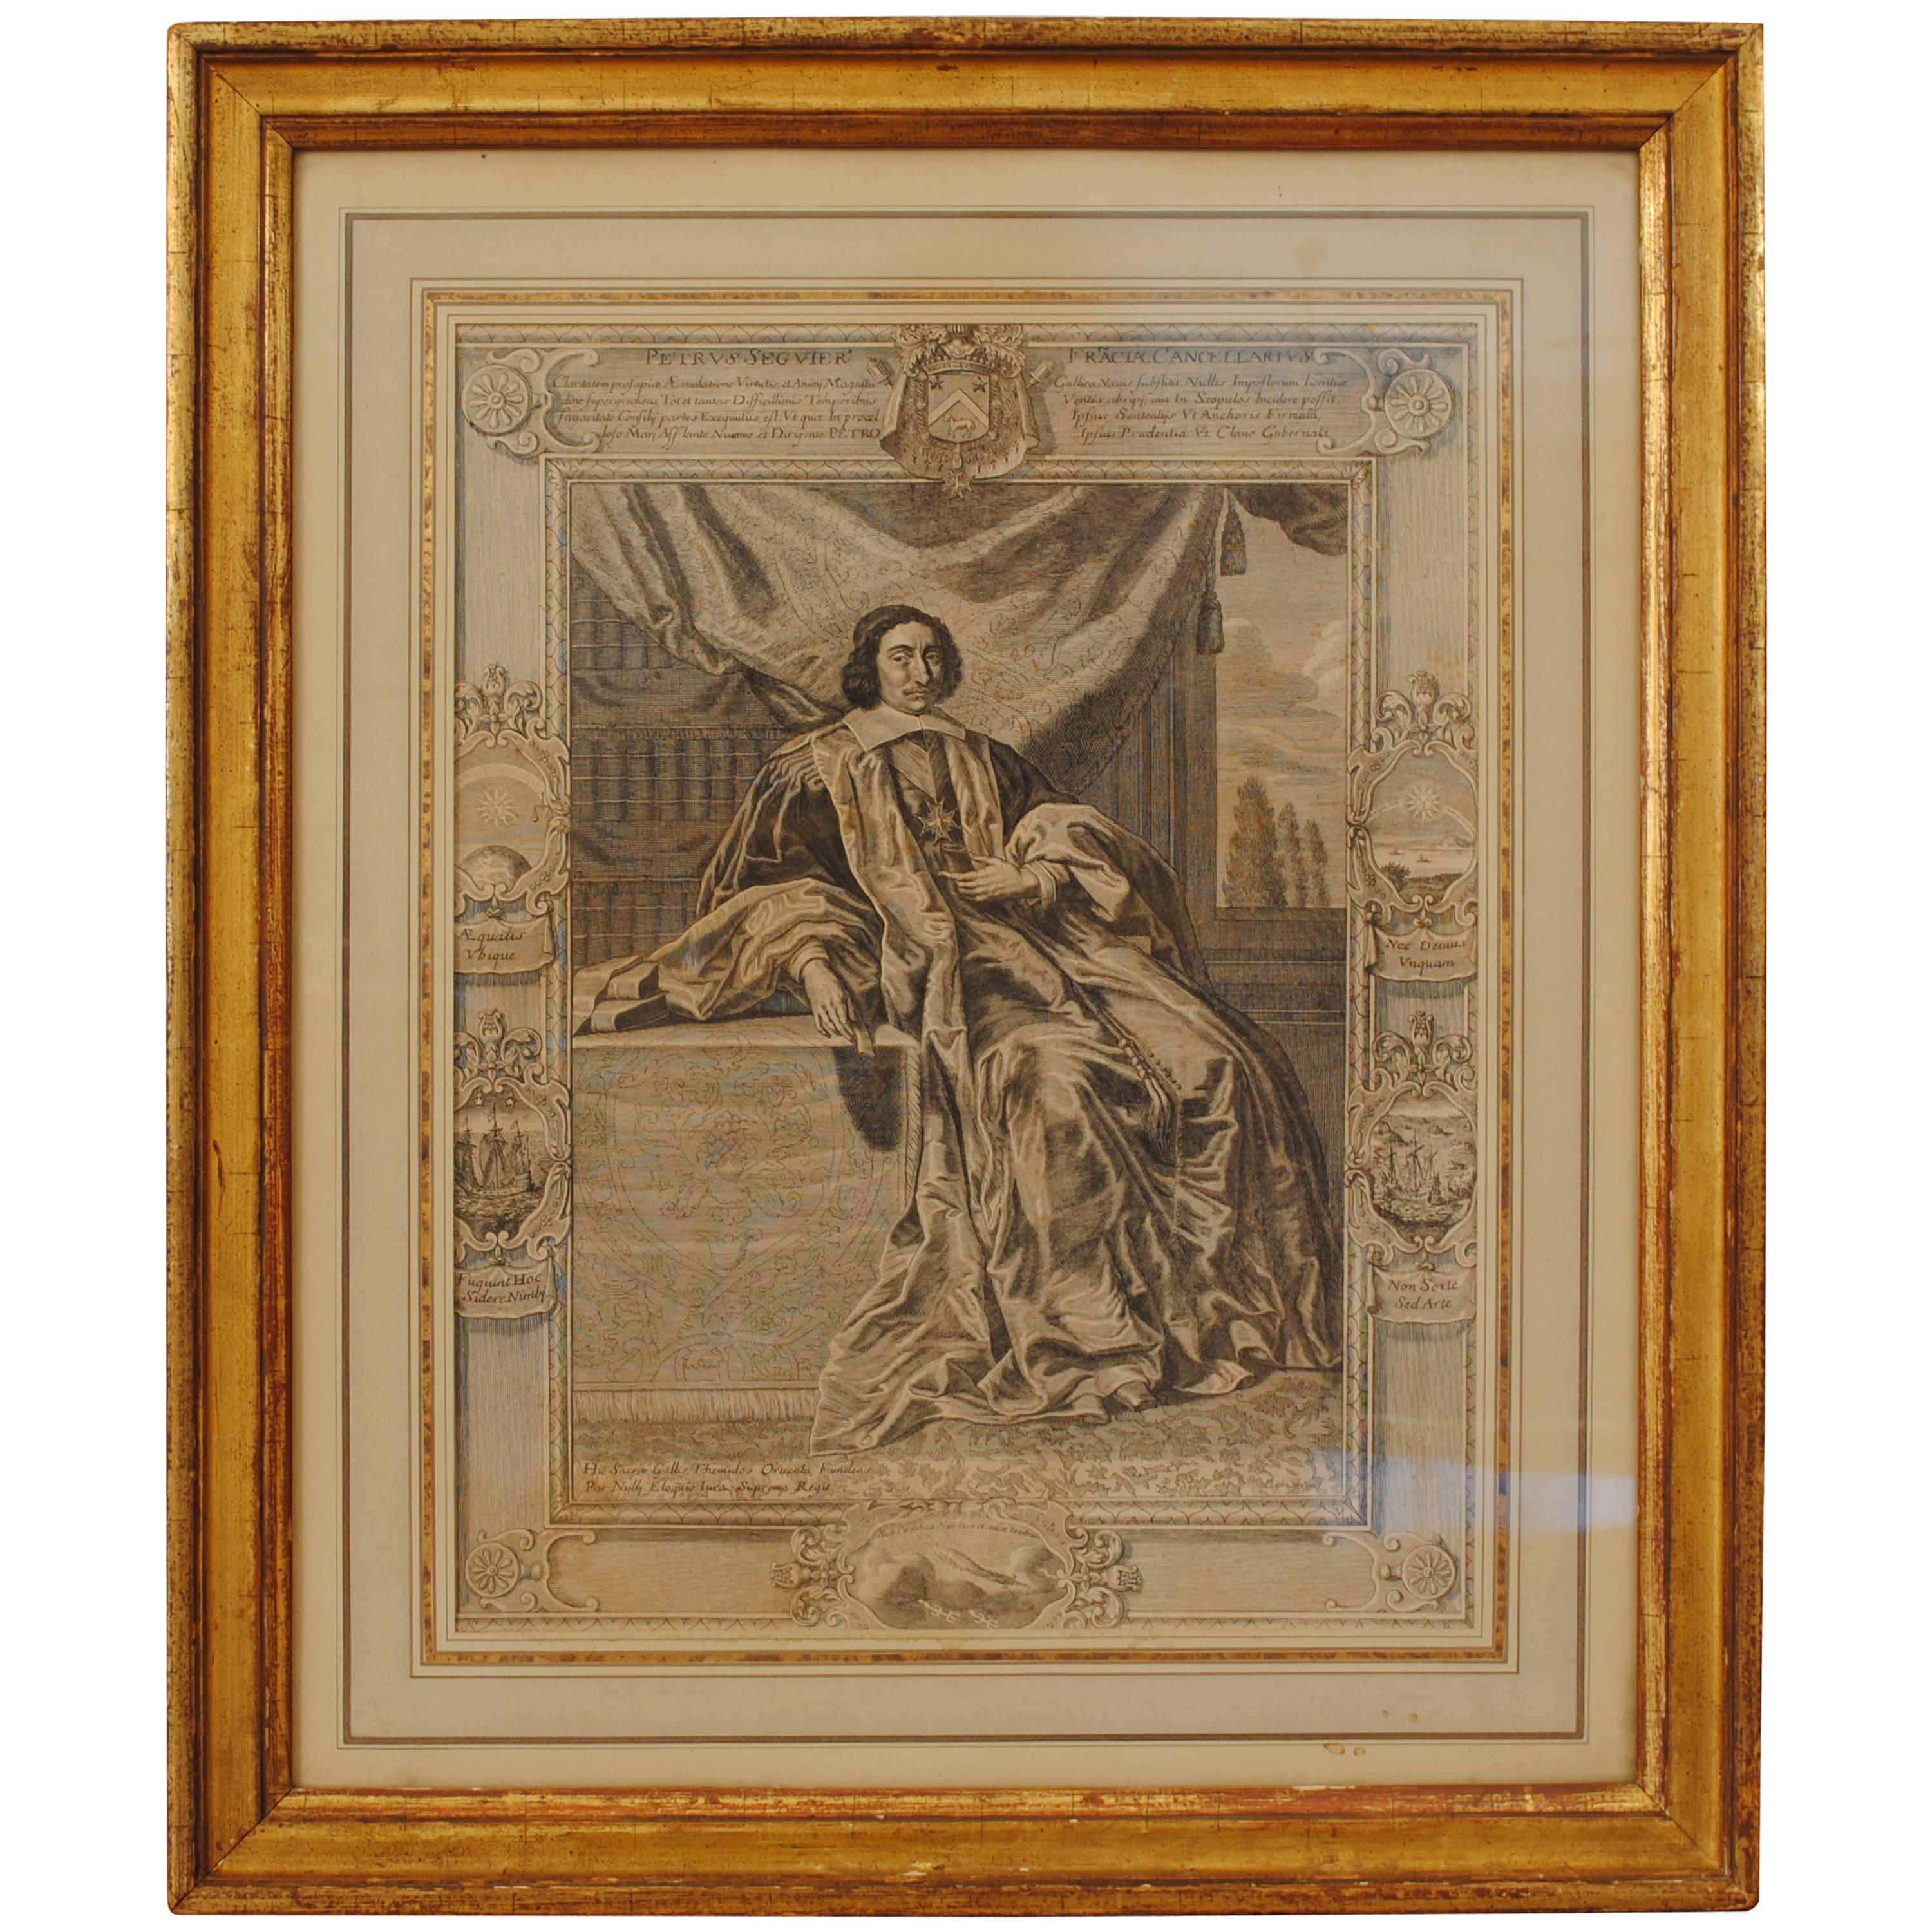 Non Vi Sed Arte In English Two 18th Century Italian Neoclassical Engravings In Giltwood Frames